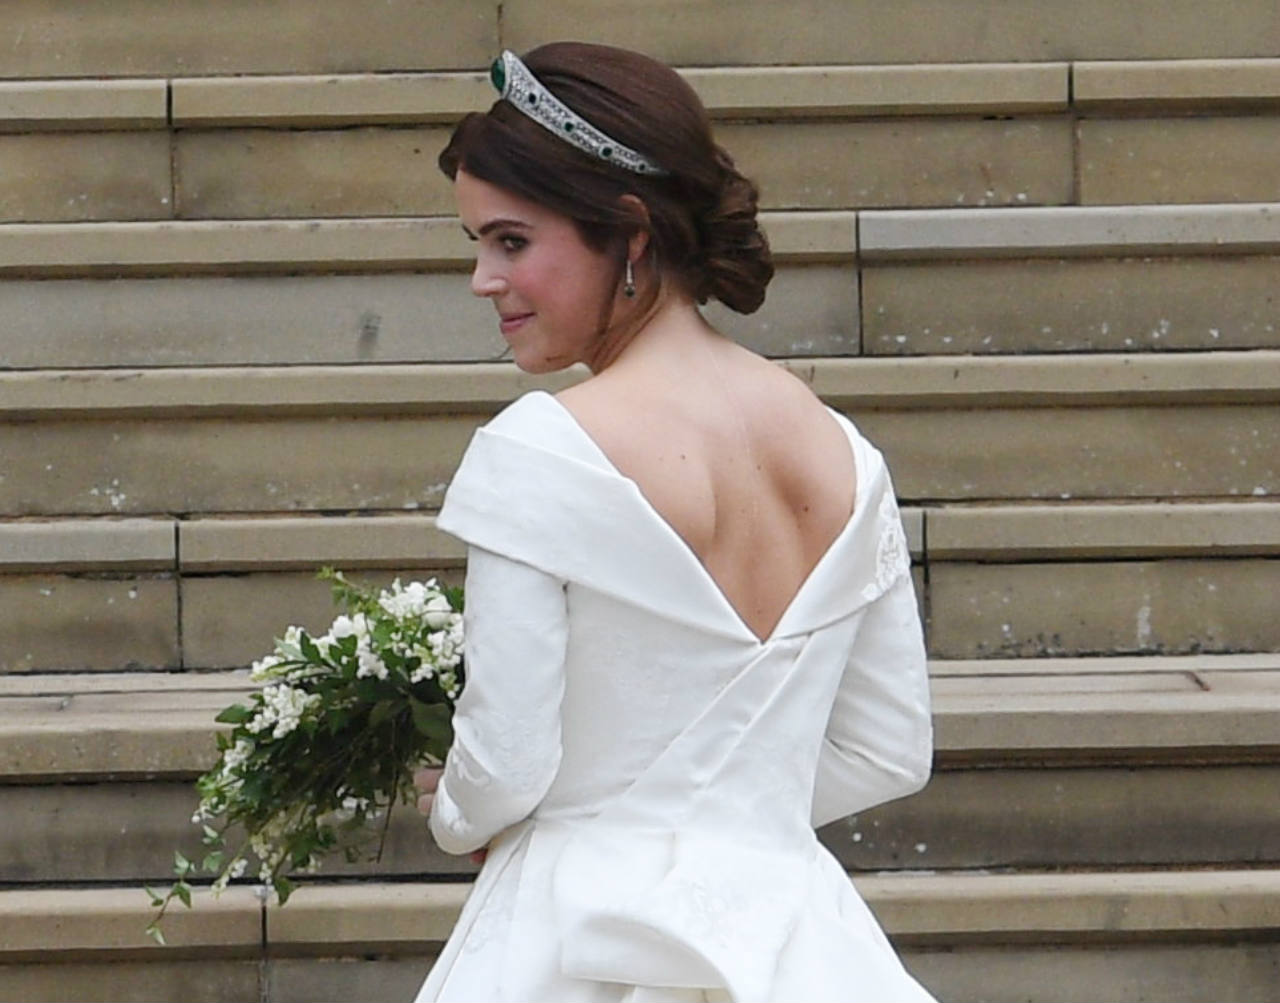 Princess Eugenie walking into the chapel in her wedding dress